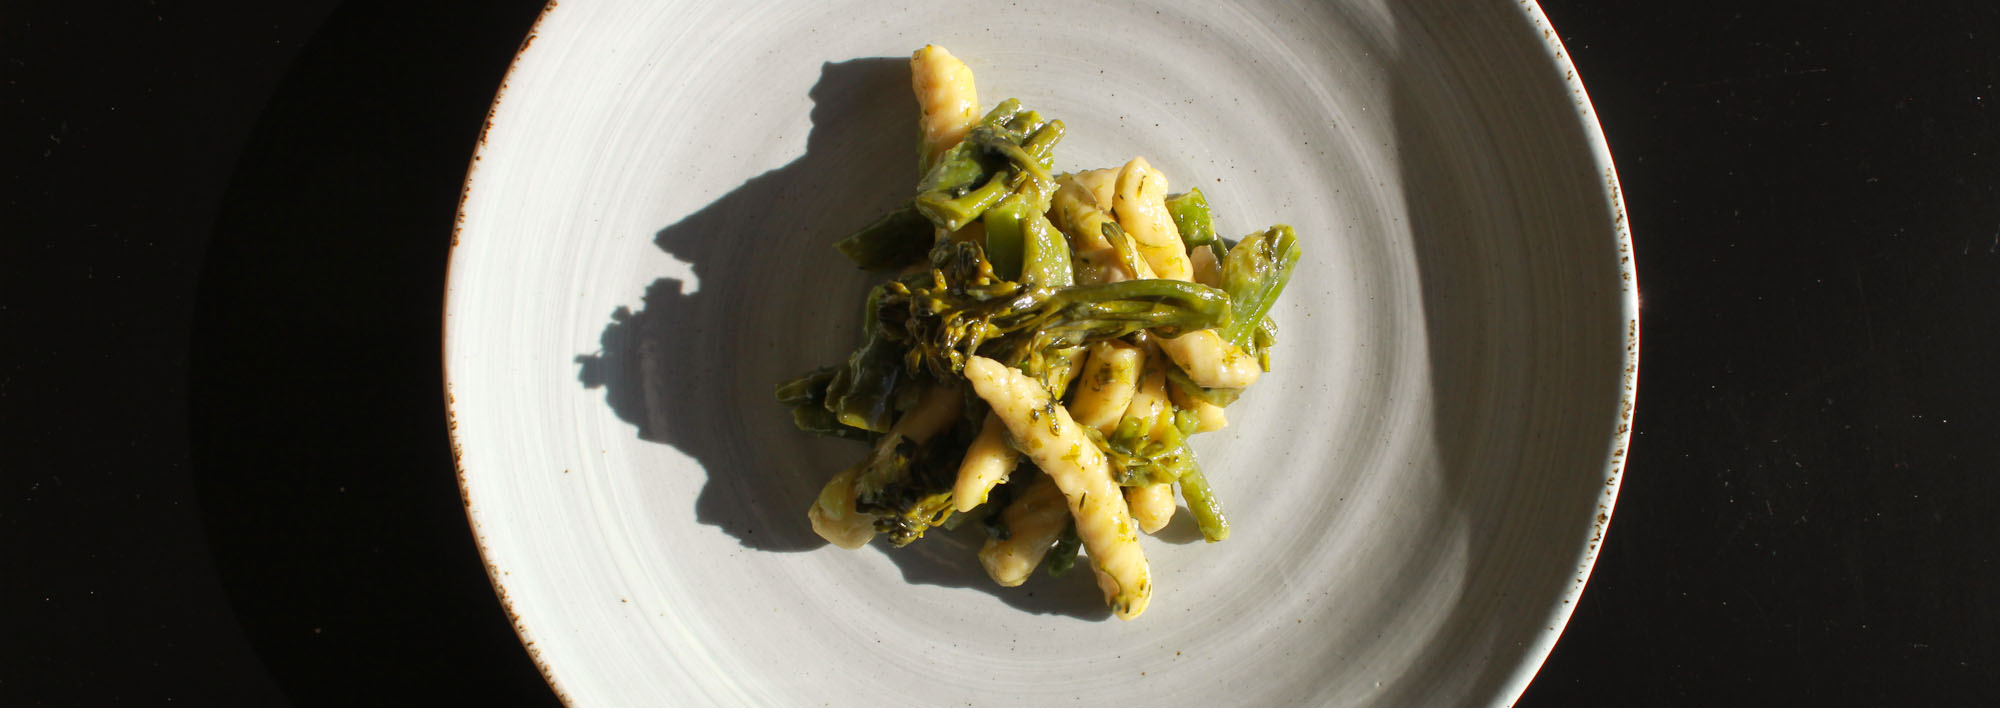 Tenderstem broccoli pasta - Italian Notes